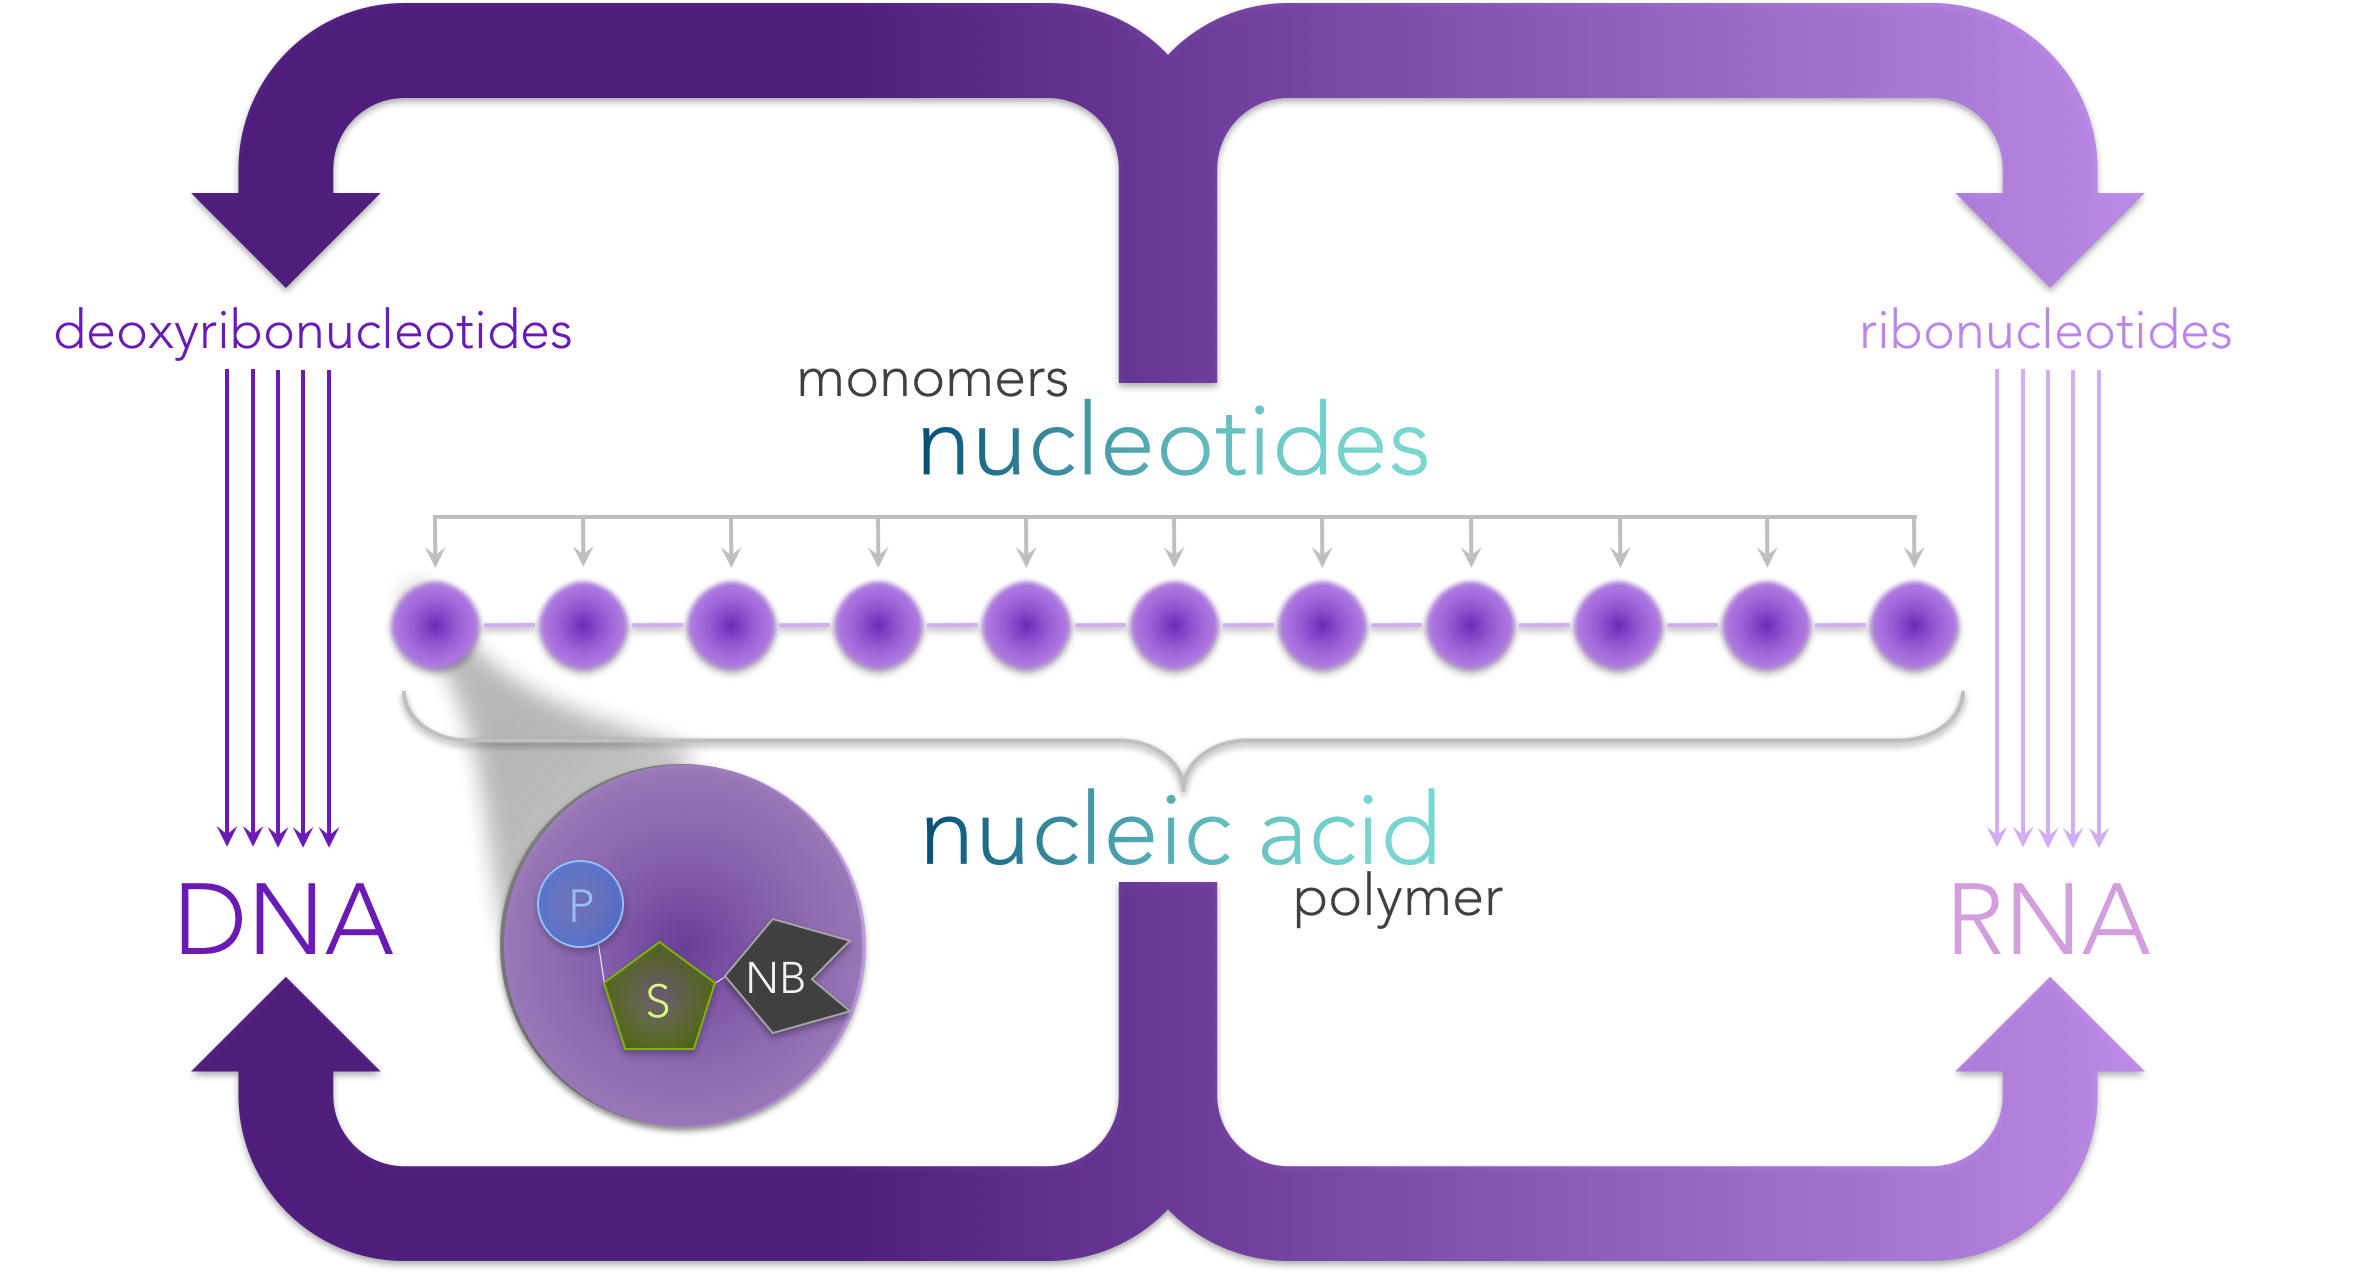 Figure 3.  Nucleic acids are polymers made of a chain of nucleotide monomers . Each nucleotide is composed of a phosphate (P), sugar (S) and a nitrogenous base (NB). Ribonucleotides have the sugar ribose, whereas deoxyribonucleotides have deoxyribose. The nitrogenous bases for ribonucleotides are adenine (A), uracil (U), cytosine (C) and guanine (G), whereas deoxyribonucleotides have the nitrogenous based A, C, G and thymine (T).